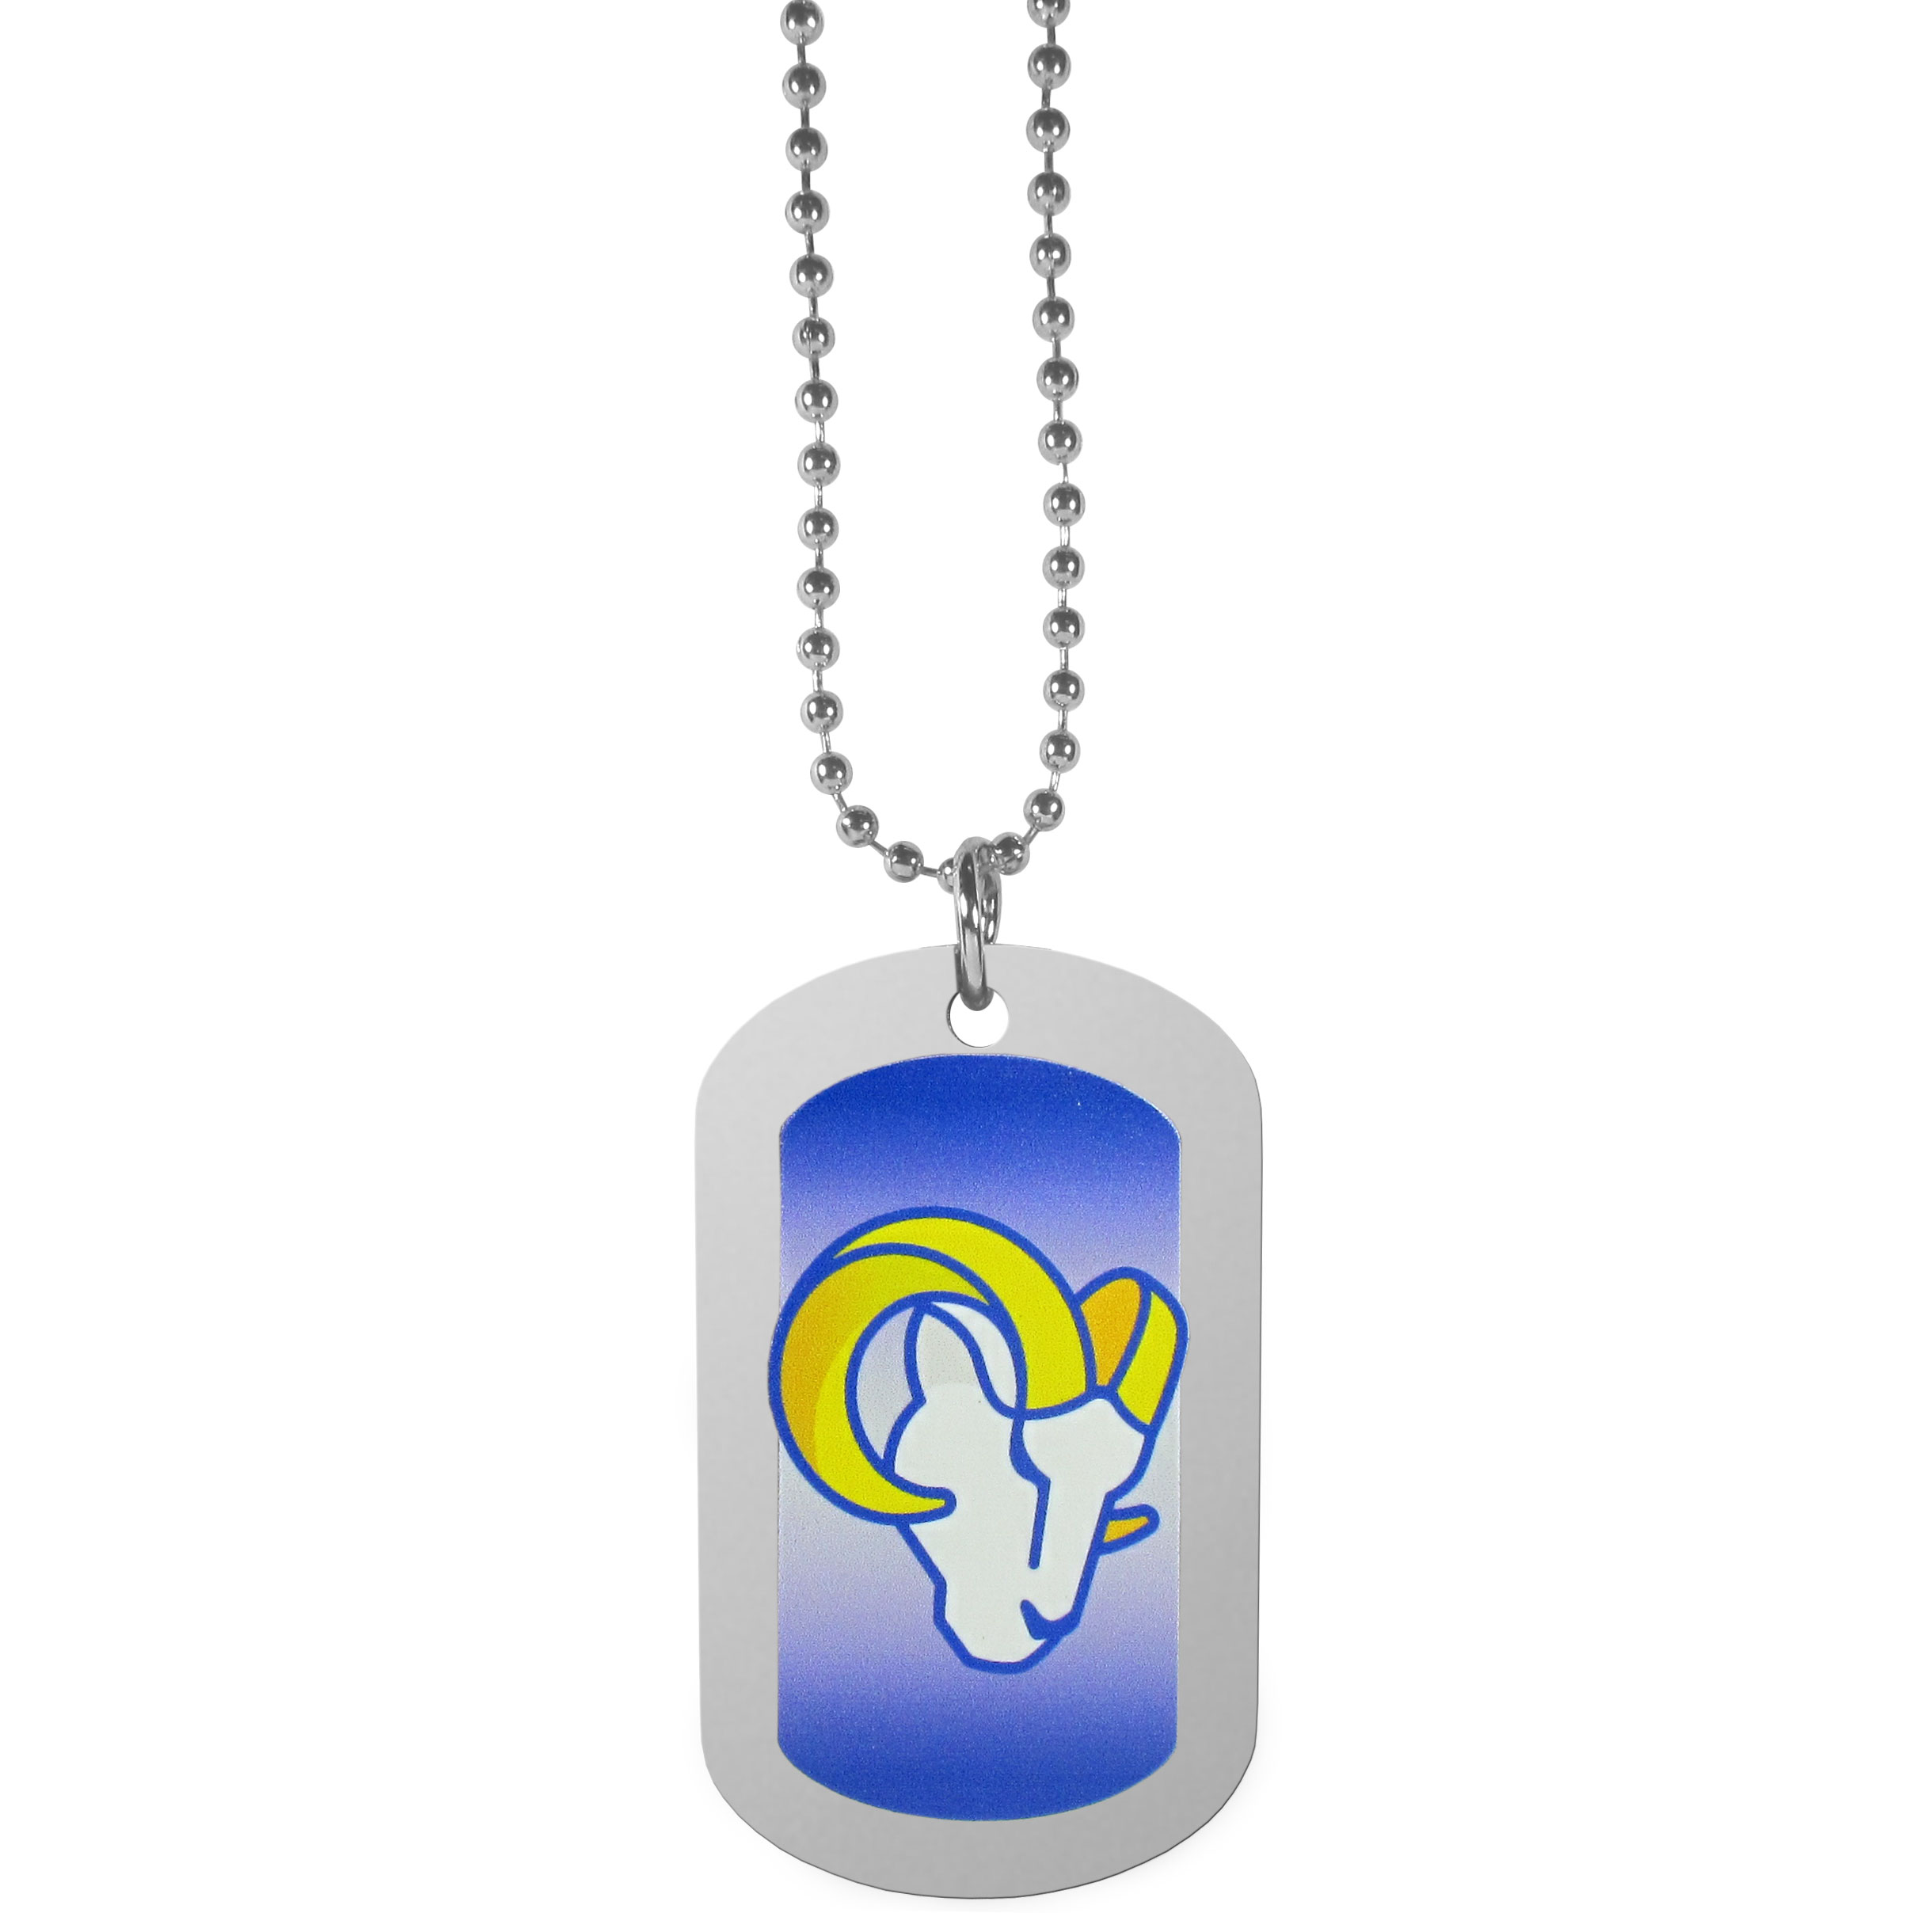 Los Angeles Rams Team Tag Necklace - Dog tag necklaces are a fashion statement that is here to stay. The sporty version of the classic tag features a gradient print in team colors featuring a full color team logo over a high polish tag to create a bold and sporty look. The tag comes on a 26 inch ball chain with a ball and joint clasp. Any Los Angeles Rams would be proud to wear this attractive fashion accessory.